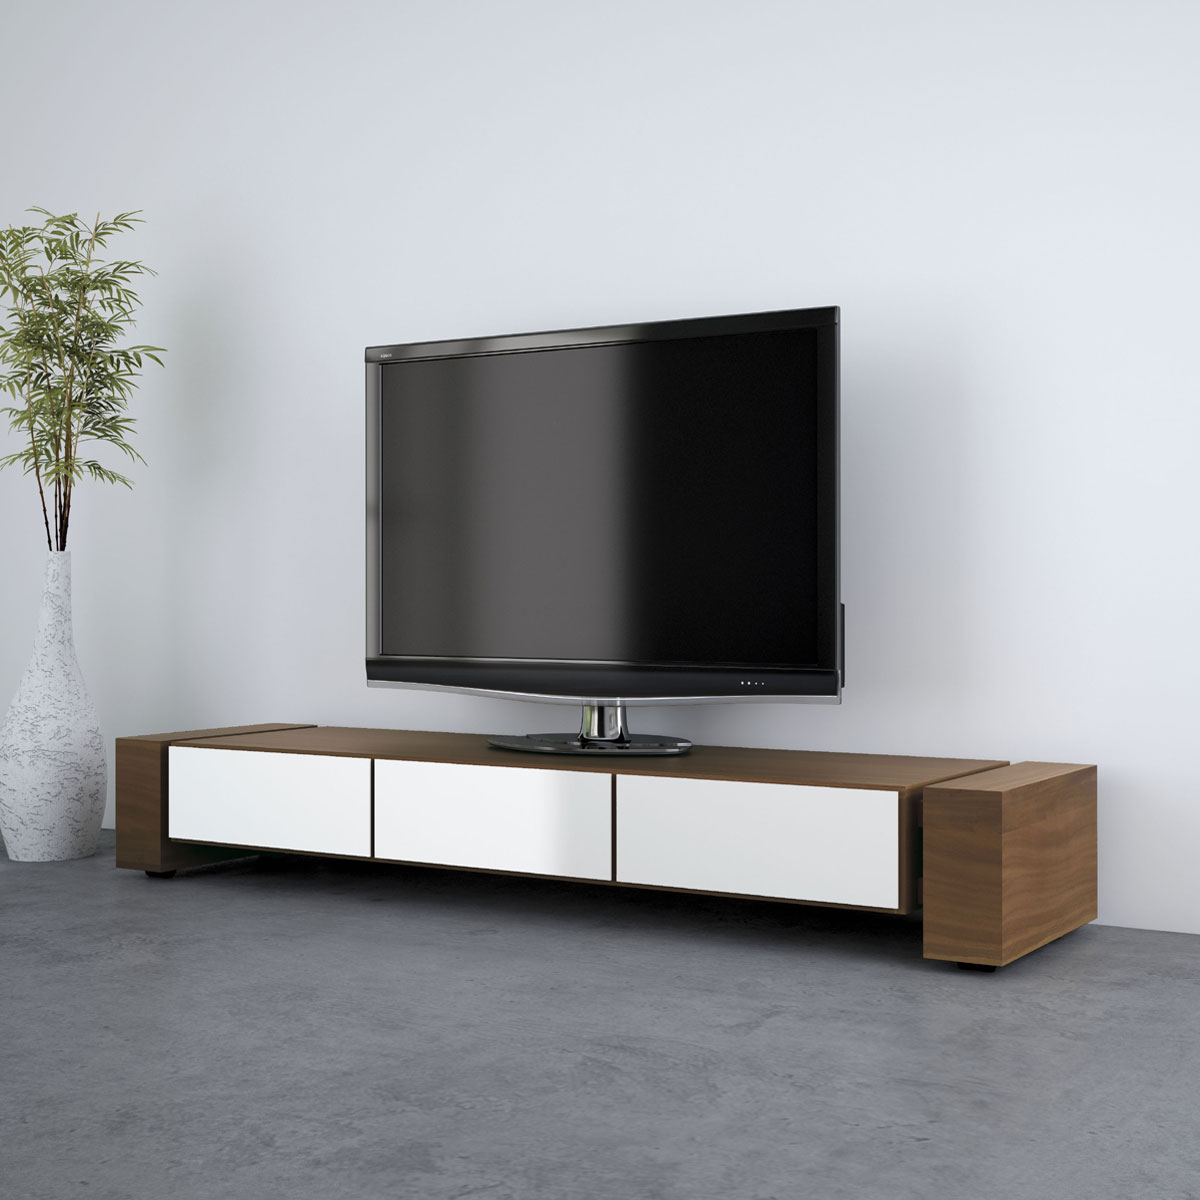 tv schrank europalette inspirierendes design f r wohnm bel. Black Bedroom Furniture Sets. Home Design Ideas